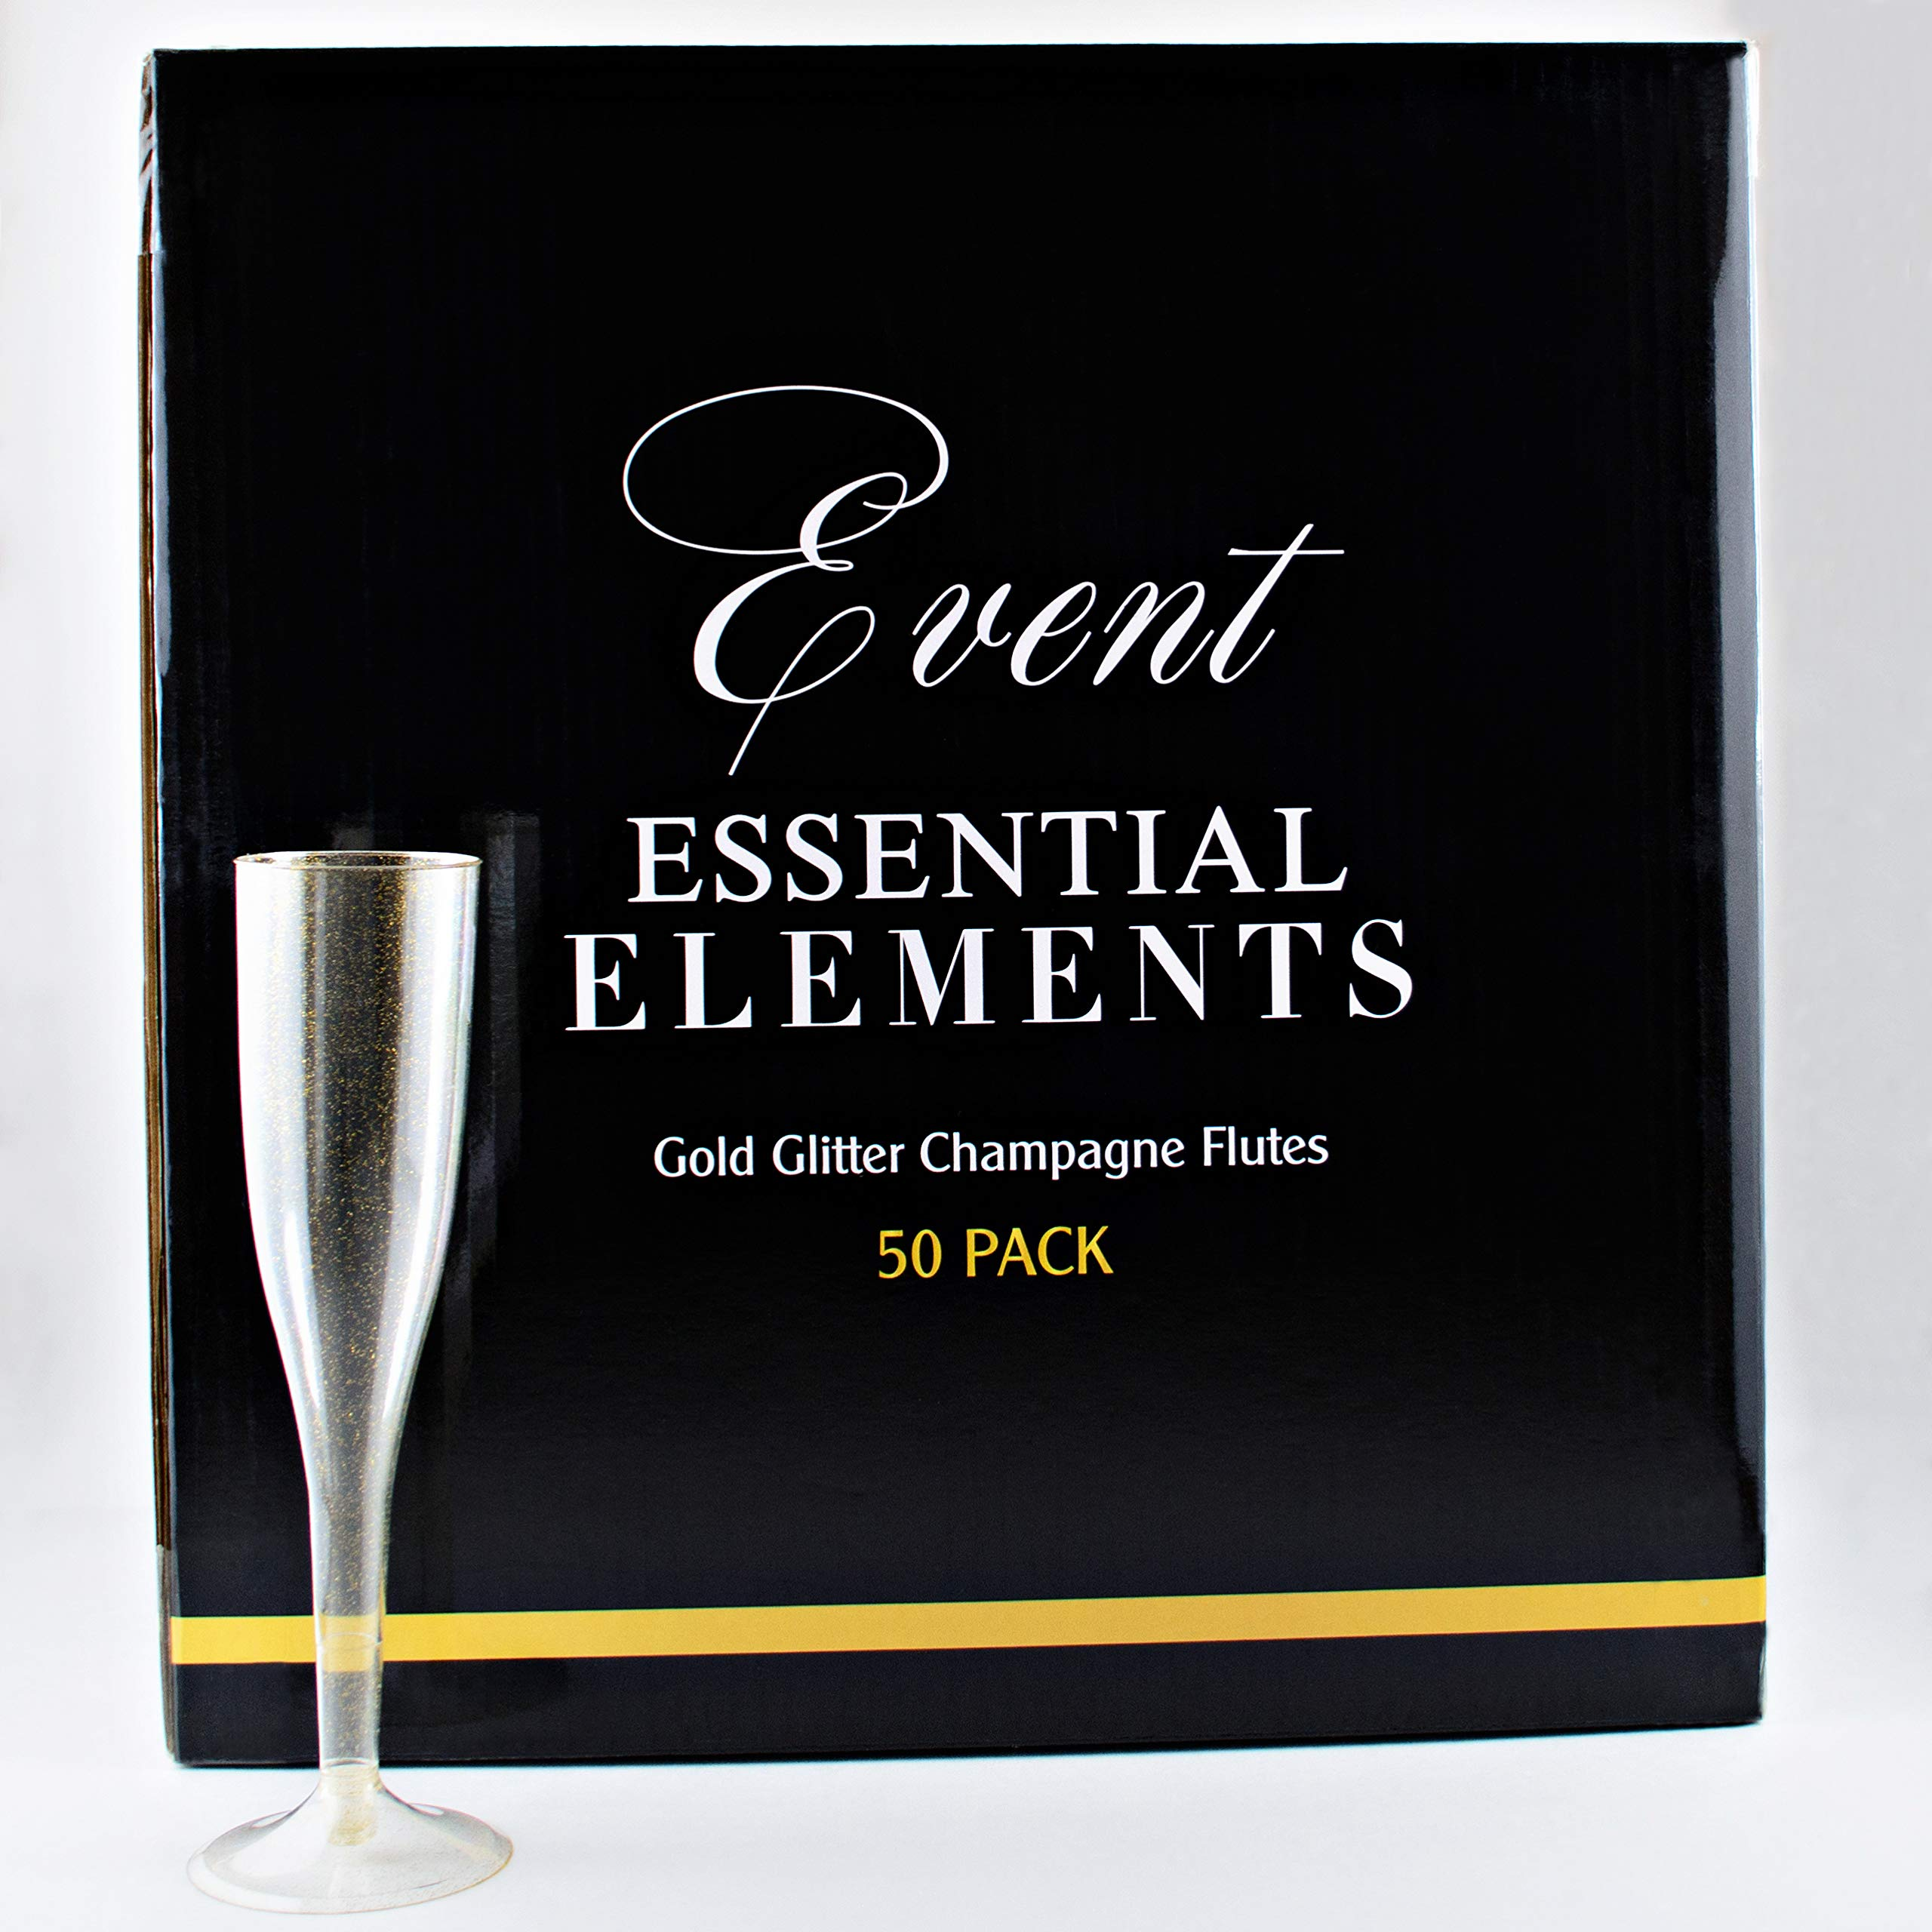 Gold Glitter Plastic Champagne Flutes 50 Pack 6 Ounce - Gold Champagne Flutes for Backyard Weddings/Party, Mimosa Bar, Champagne Toasts | Shatterproof Flute Glasses - Disposable Reusable Recyclable by Event Essential Elements